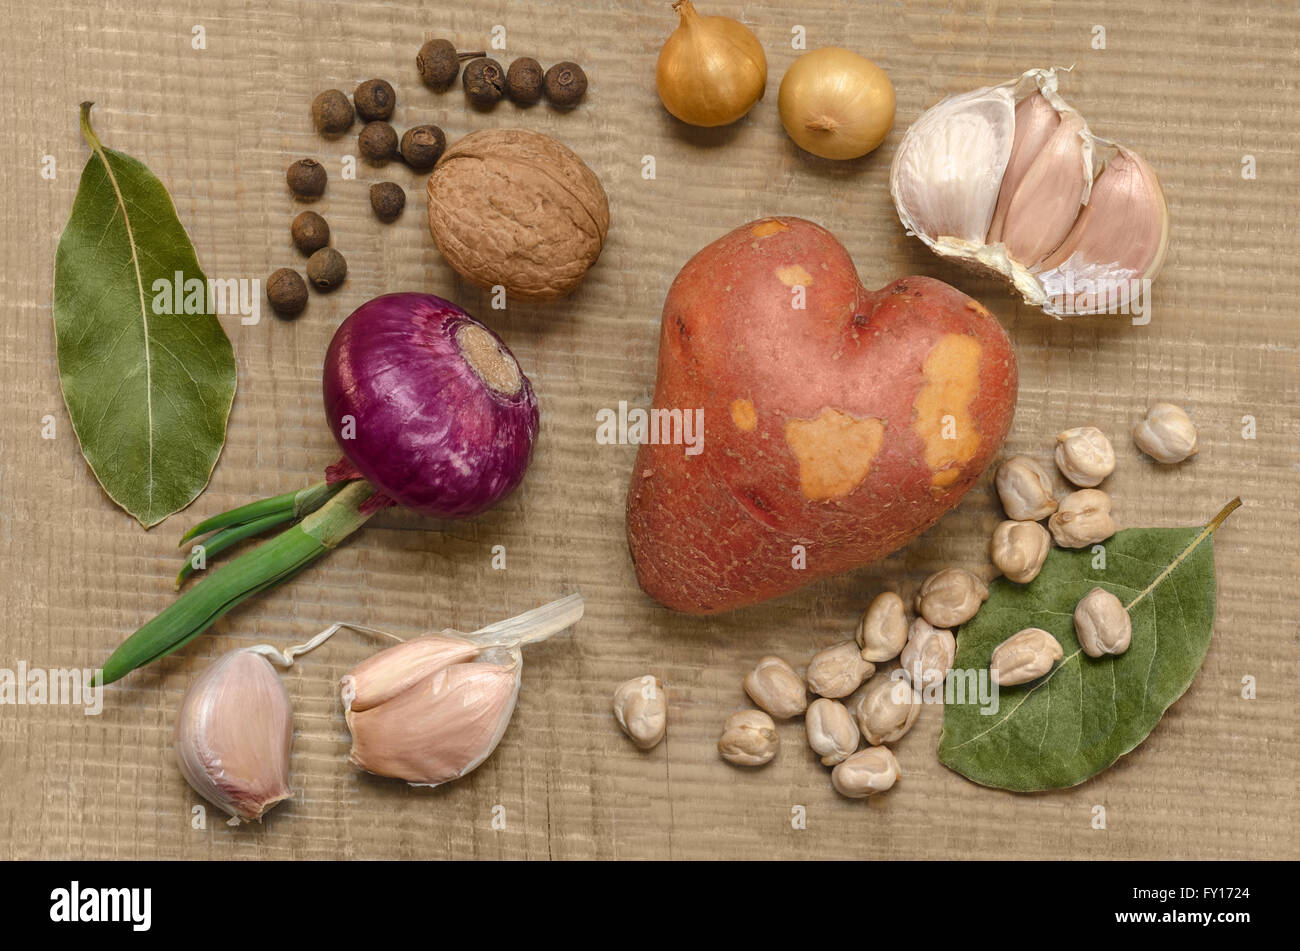 Raw potatoes and spices, on the old wooden surface. - Stock Image